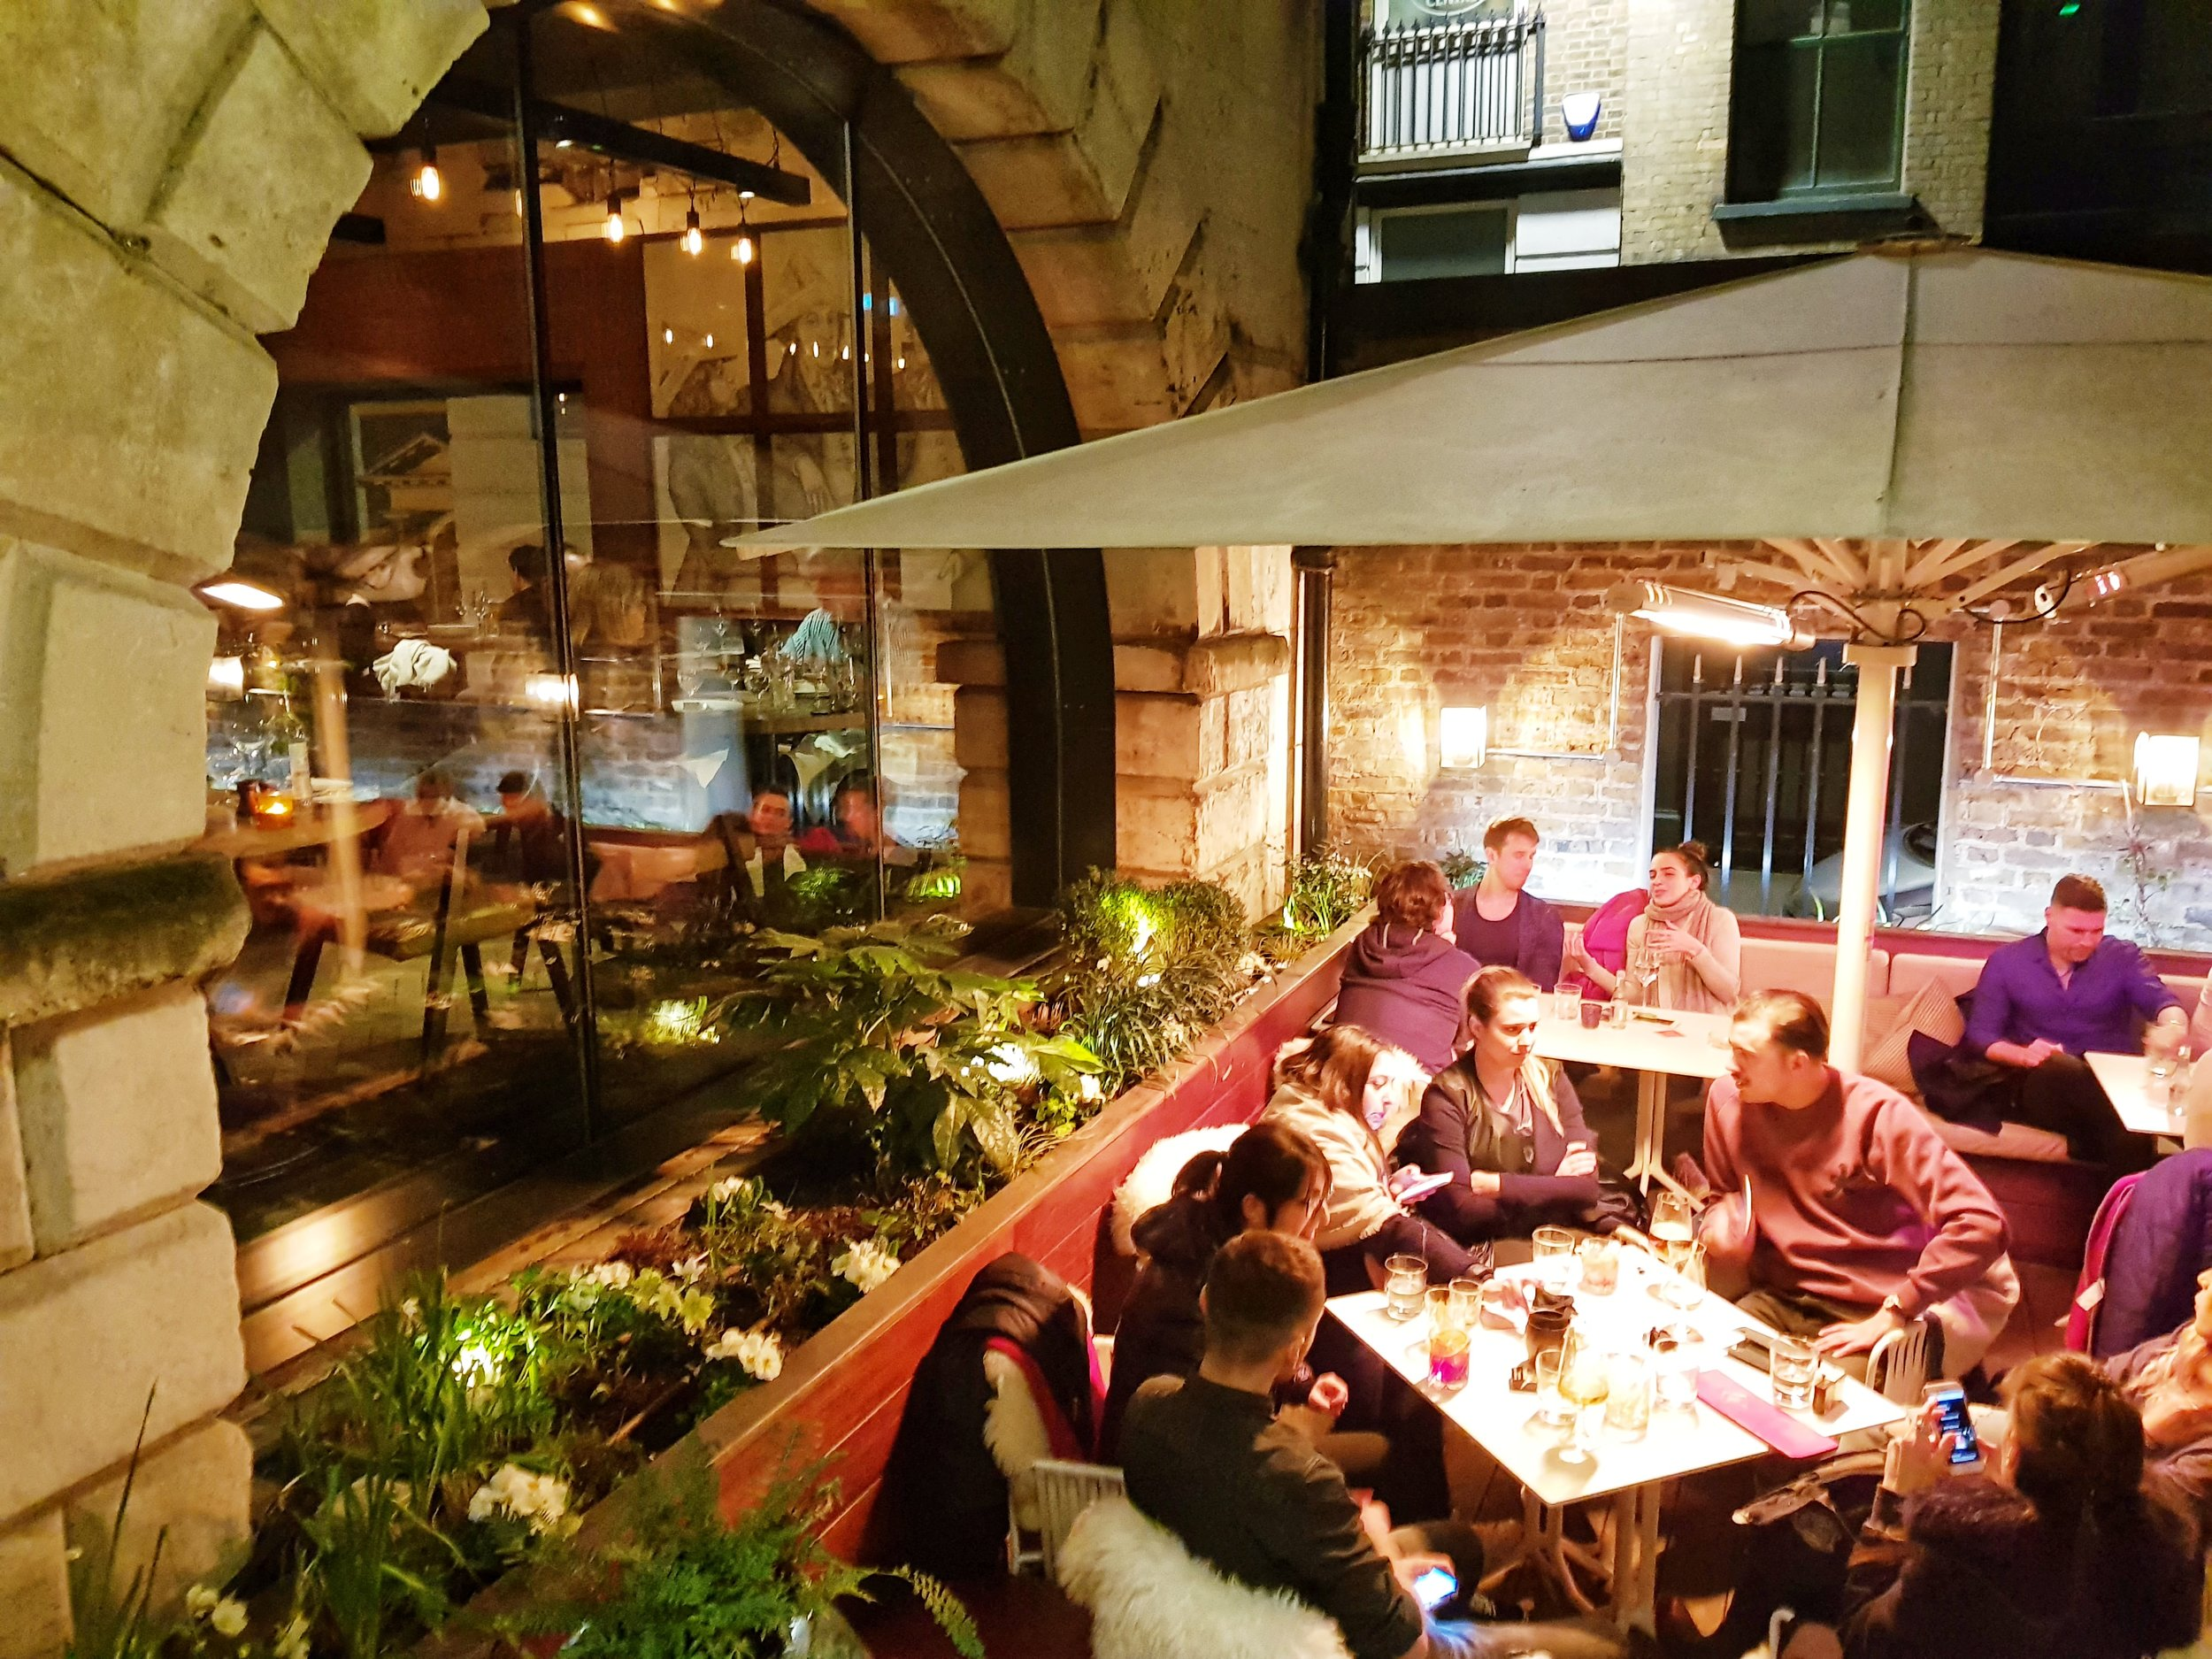 NEW STREET GRILL RESTAURANT REVIEW LONDON